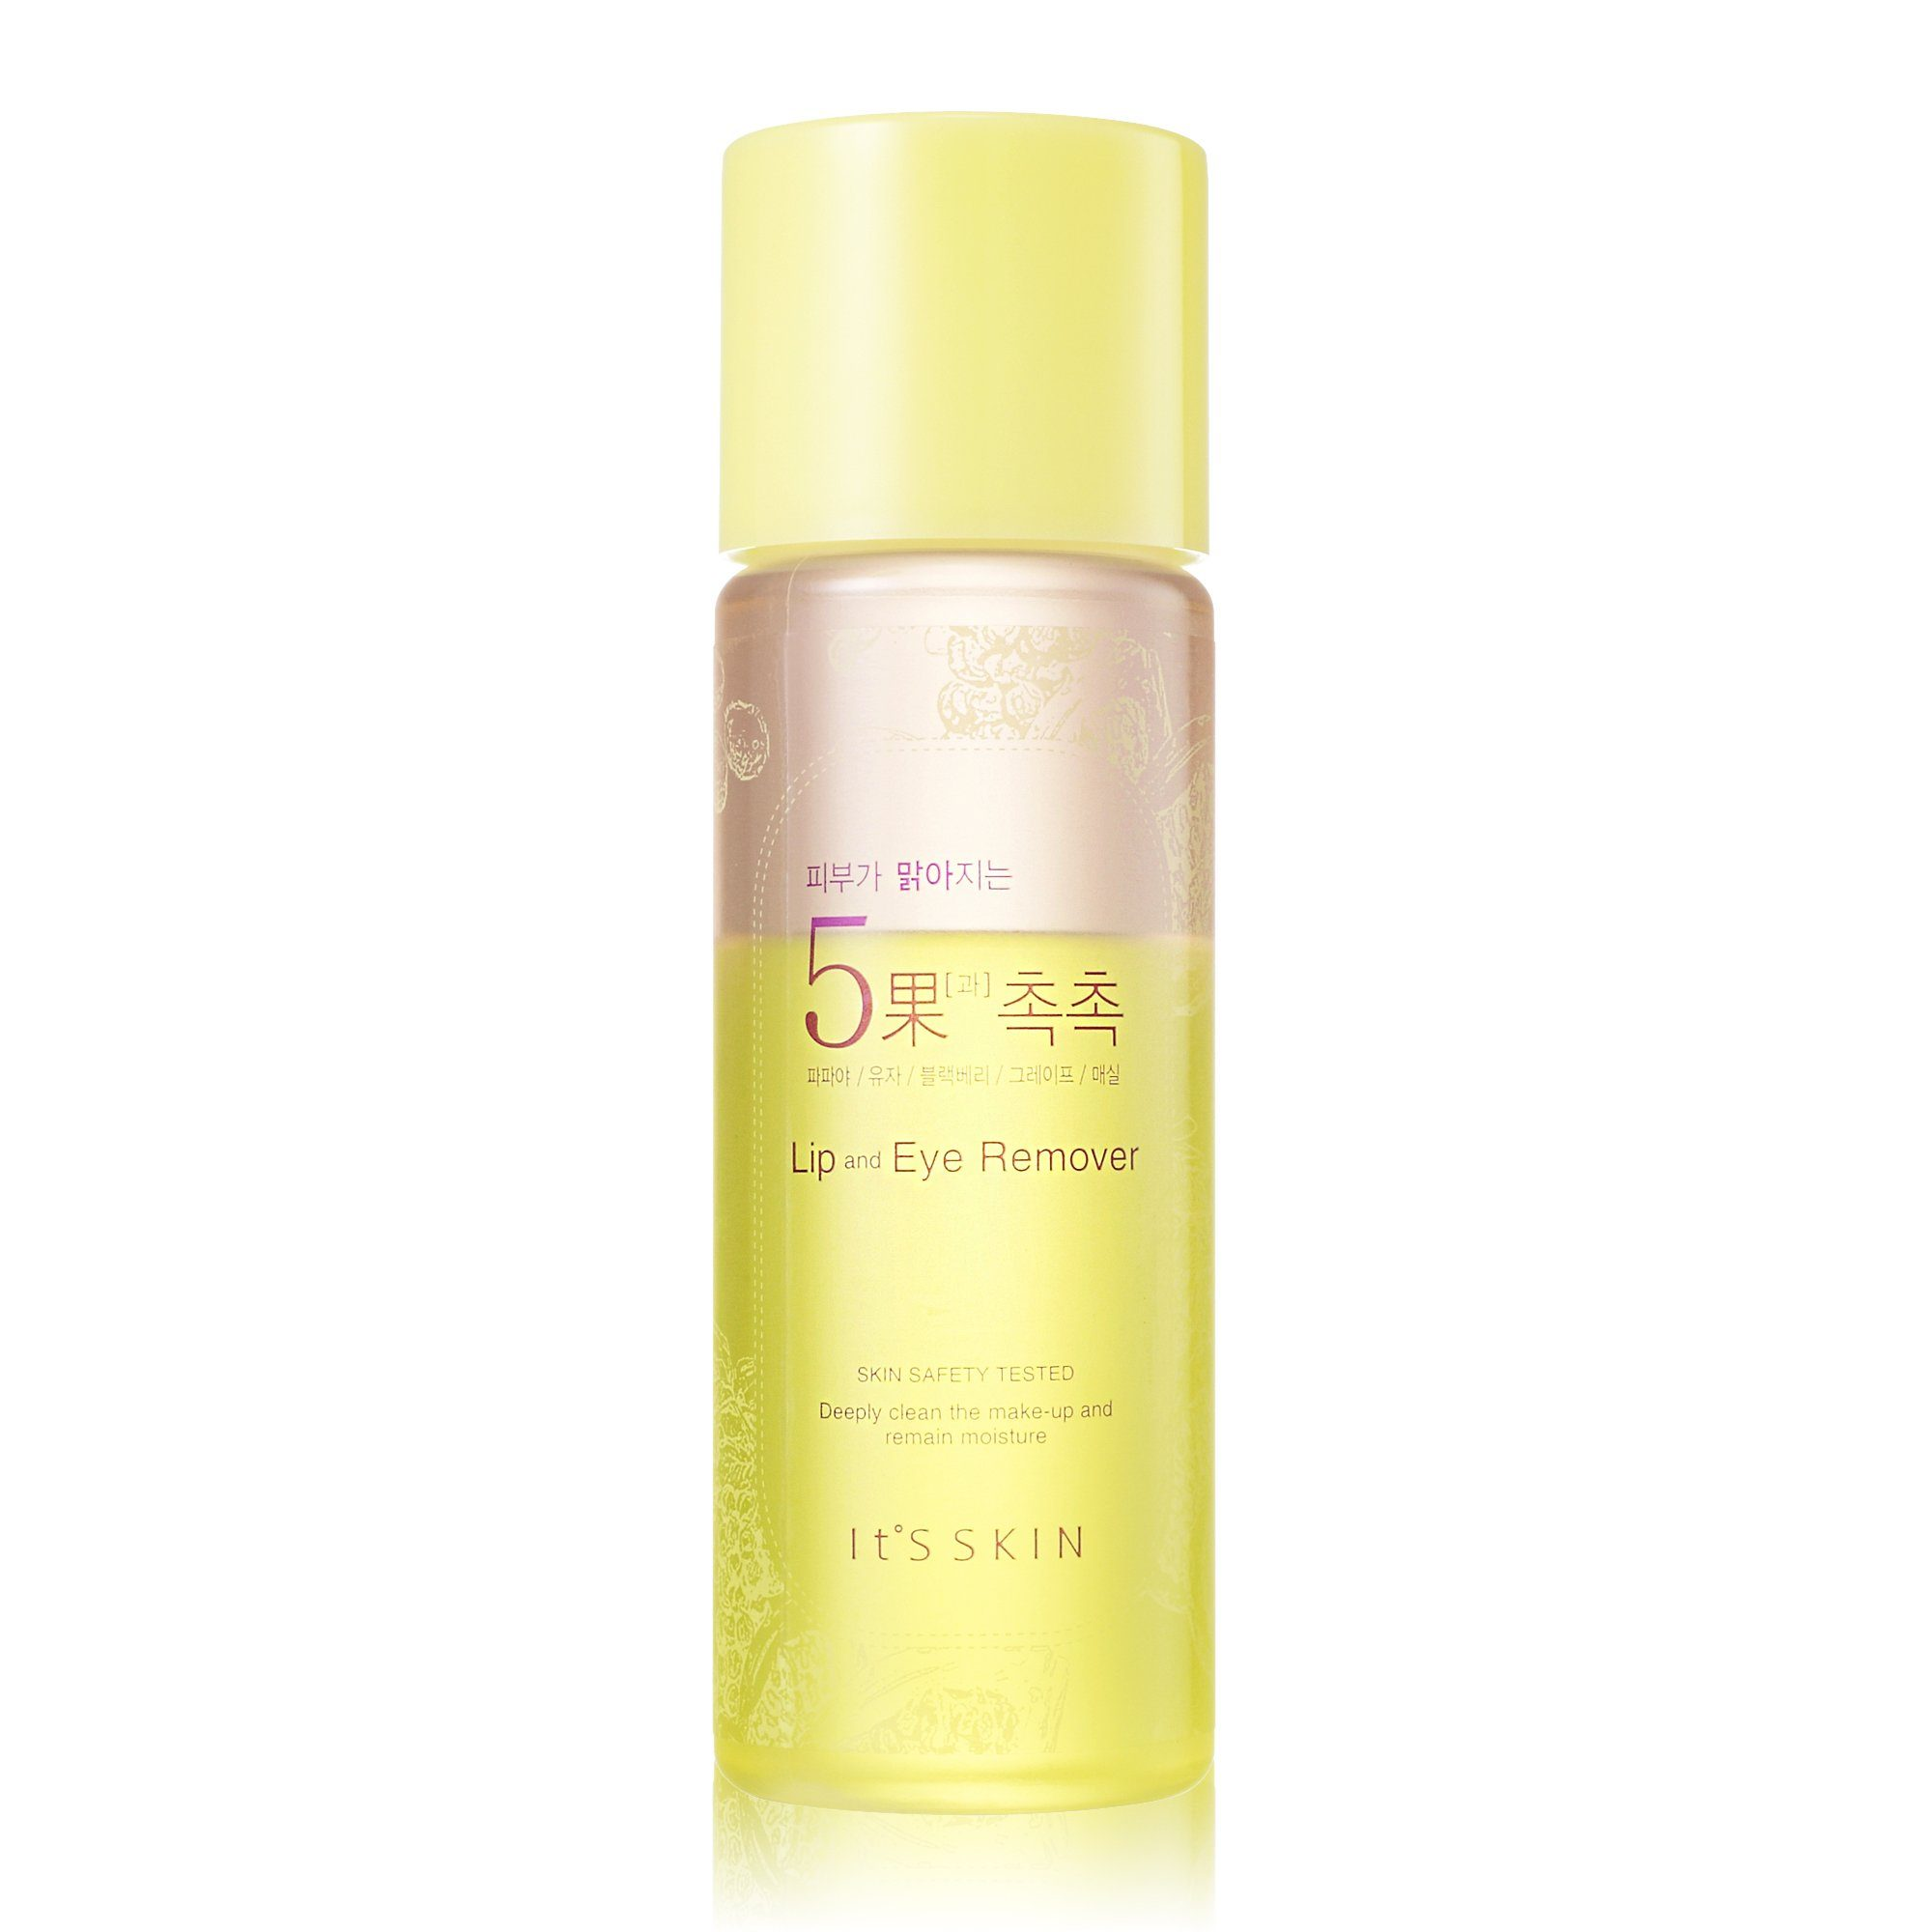 Health & Beauty > Personal Care > Cosmetics > Skin Care > Makeup Removers - Brightening 5 Fruits Lip & Eye Remover Płyn Do Demakijażu 145 Ml